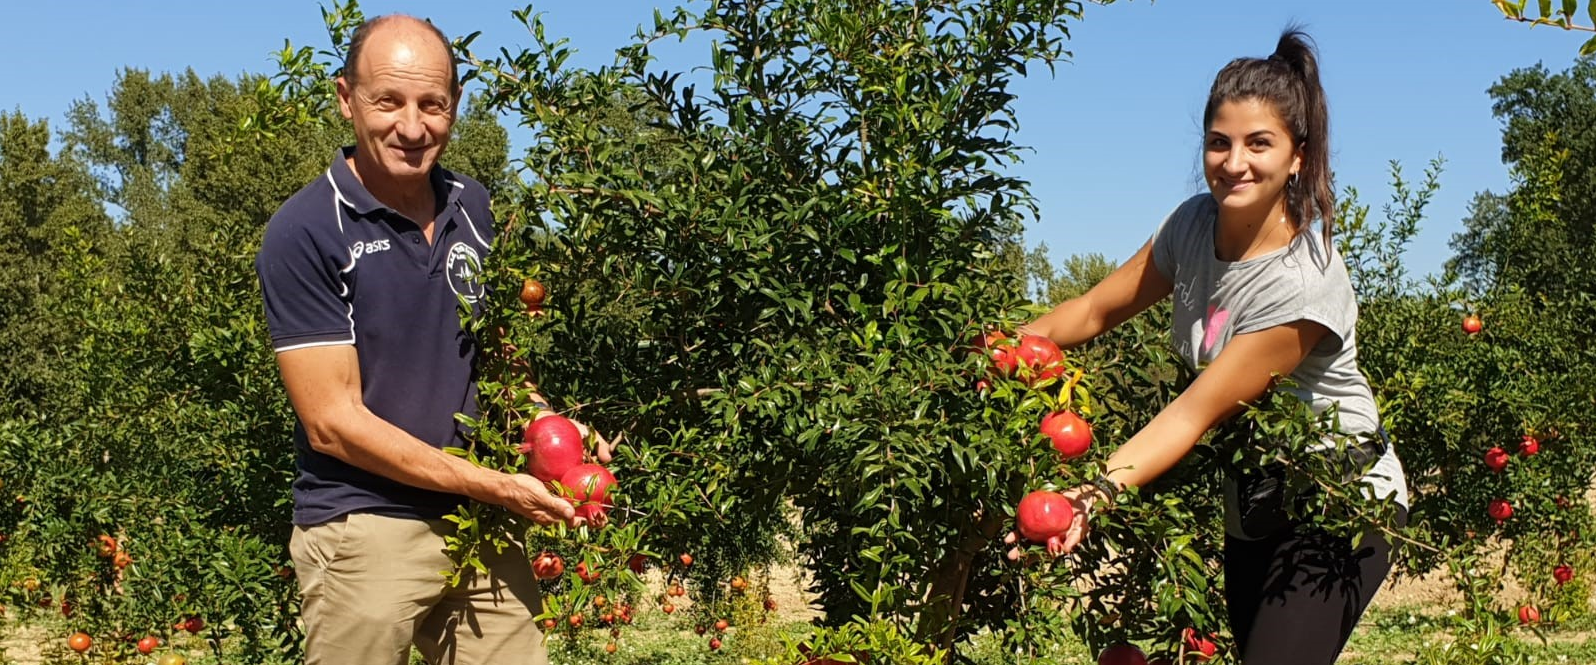 The offer expands with fruit trees from Italy